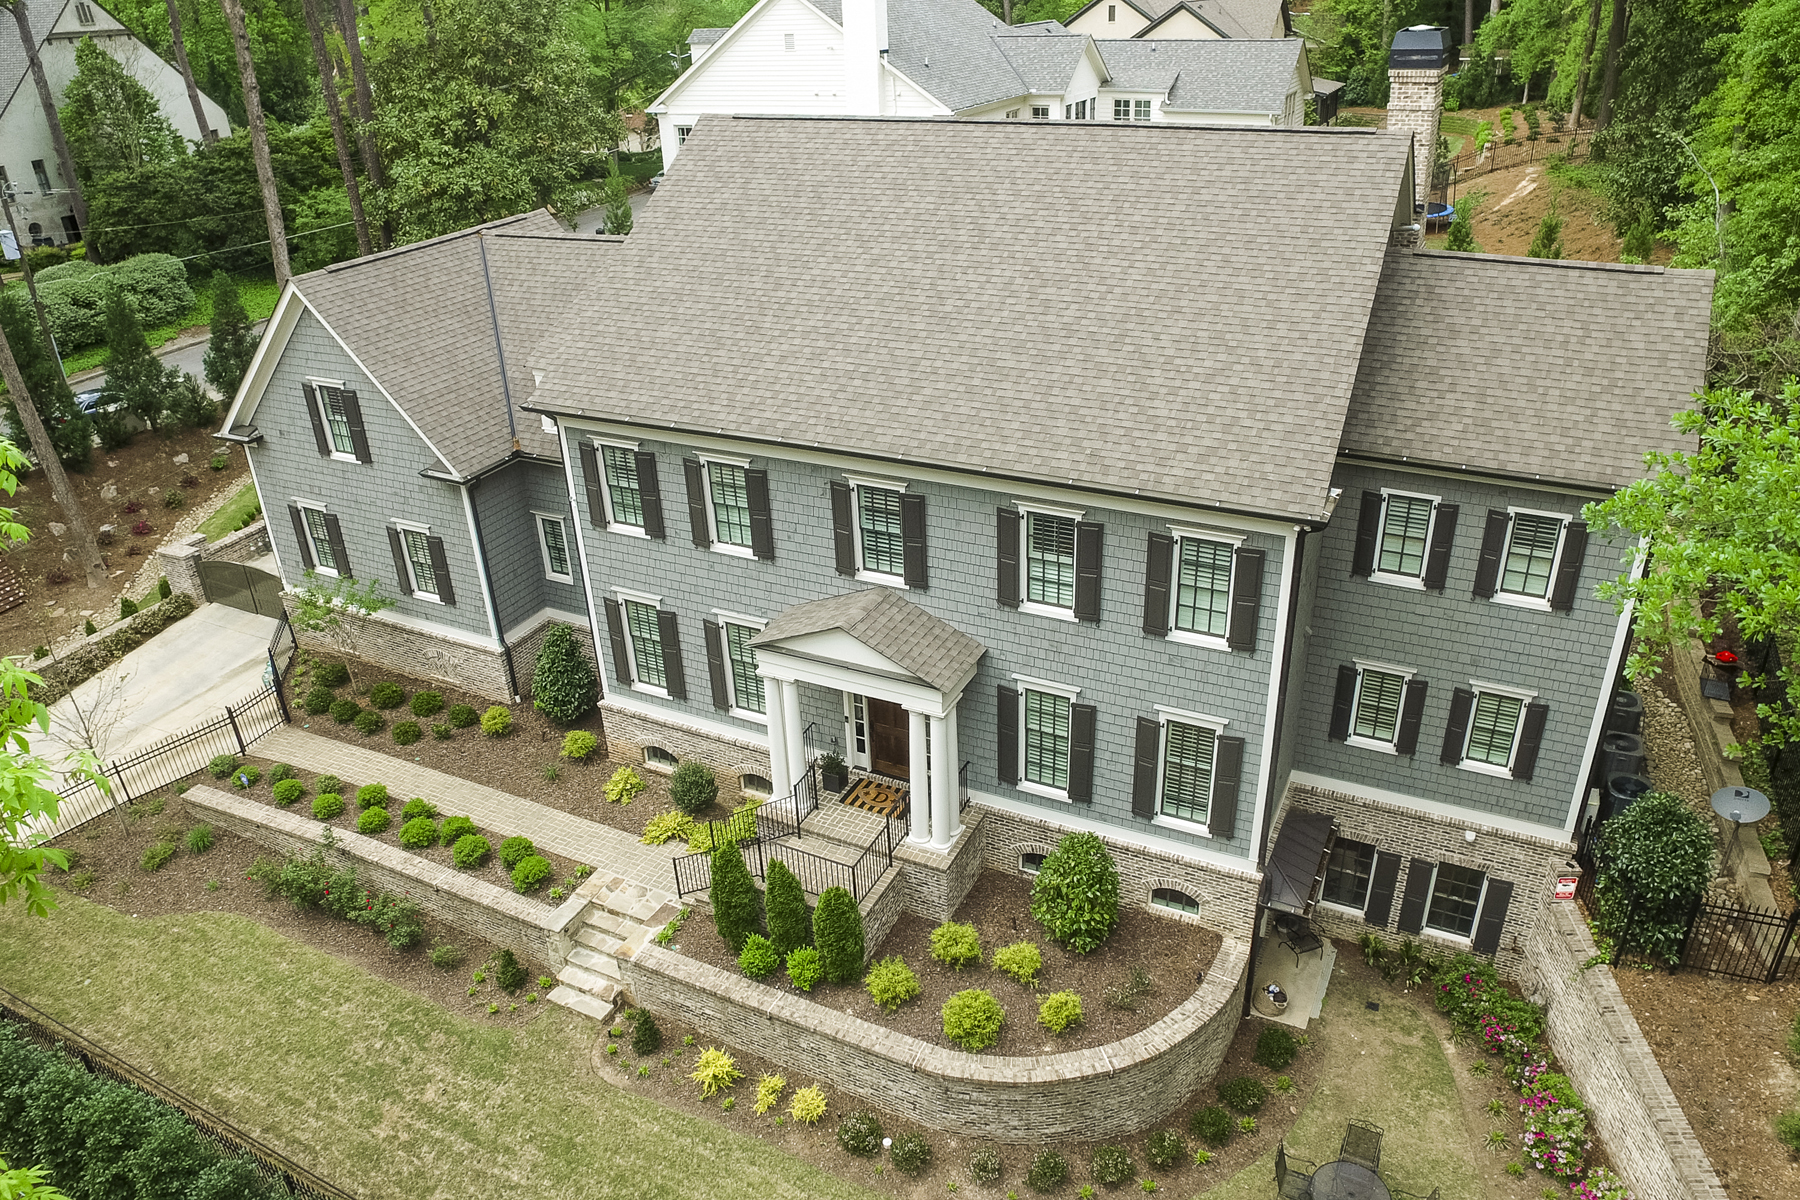 Частный односемейный дом для того Продажа на Quality Recent Construction Home On Large Corner Lot 985 Dawn View Lane NW Buckhead, Atlanta, Джорджия, 30327 Соединенные Штаты